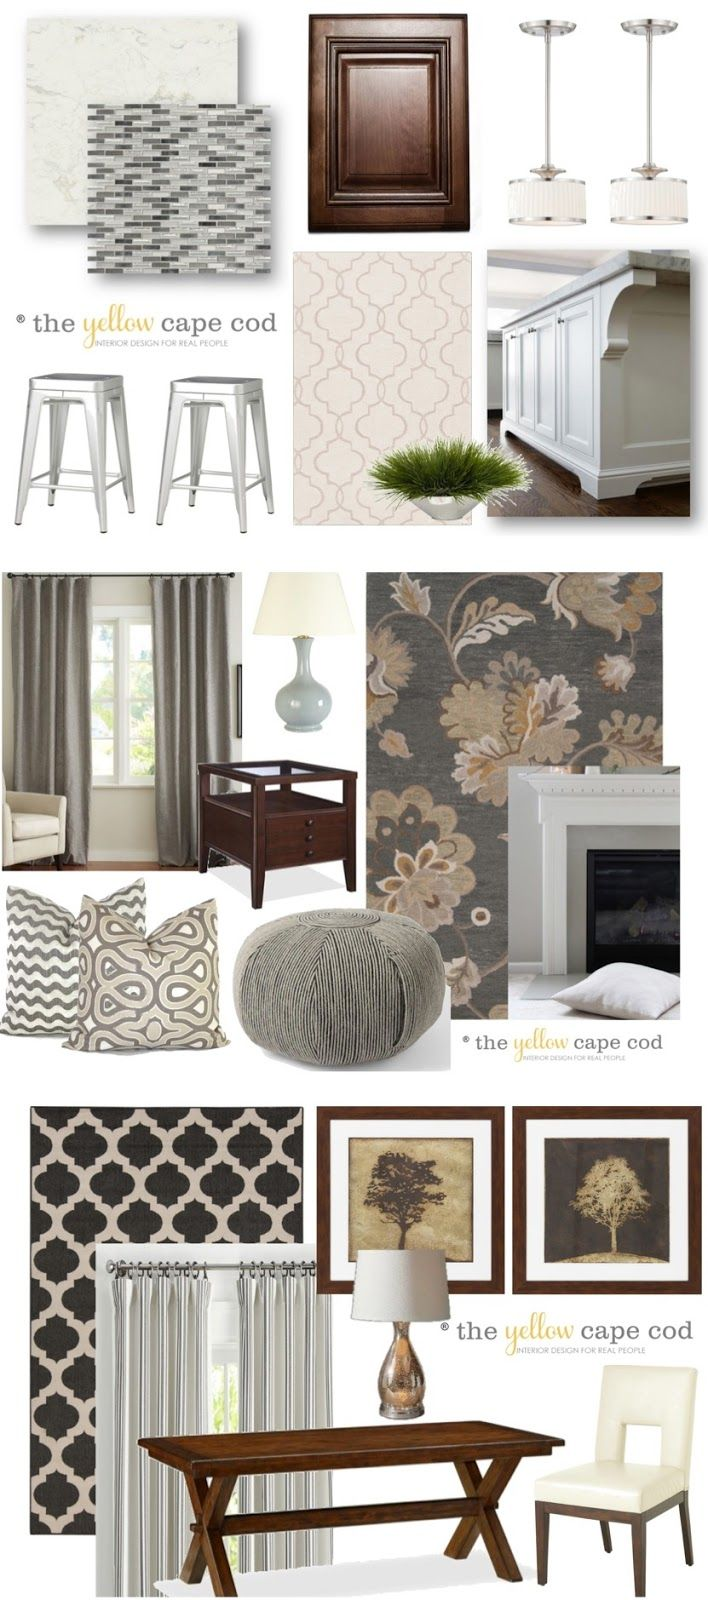 The Yellow Cape Cod: Gray/Tan Transitional Style Multiroom ...